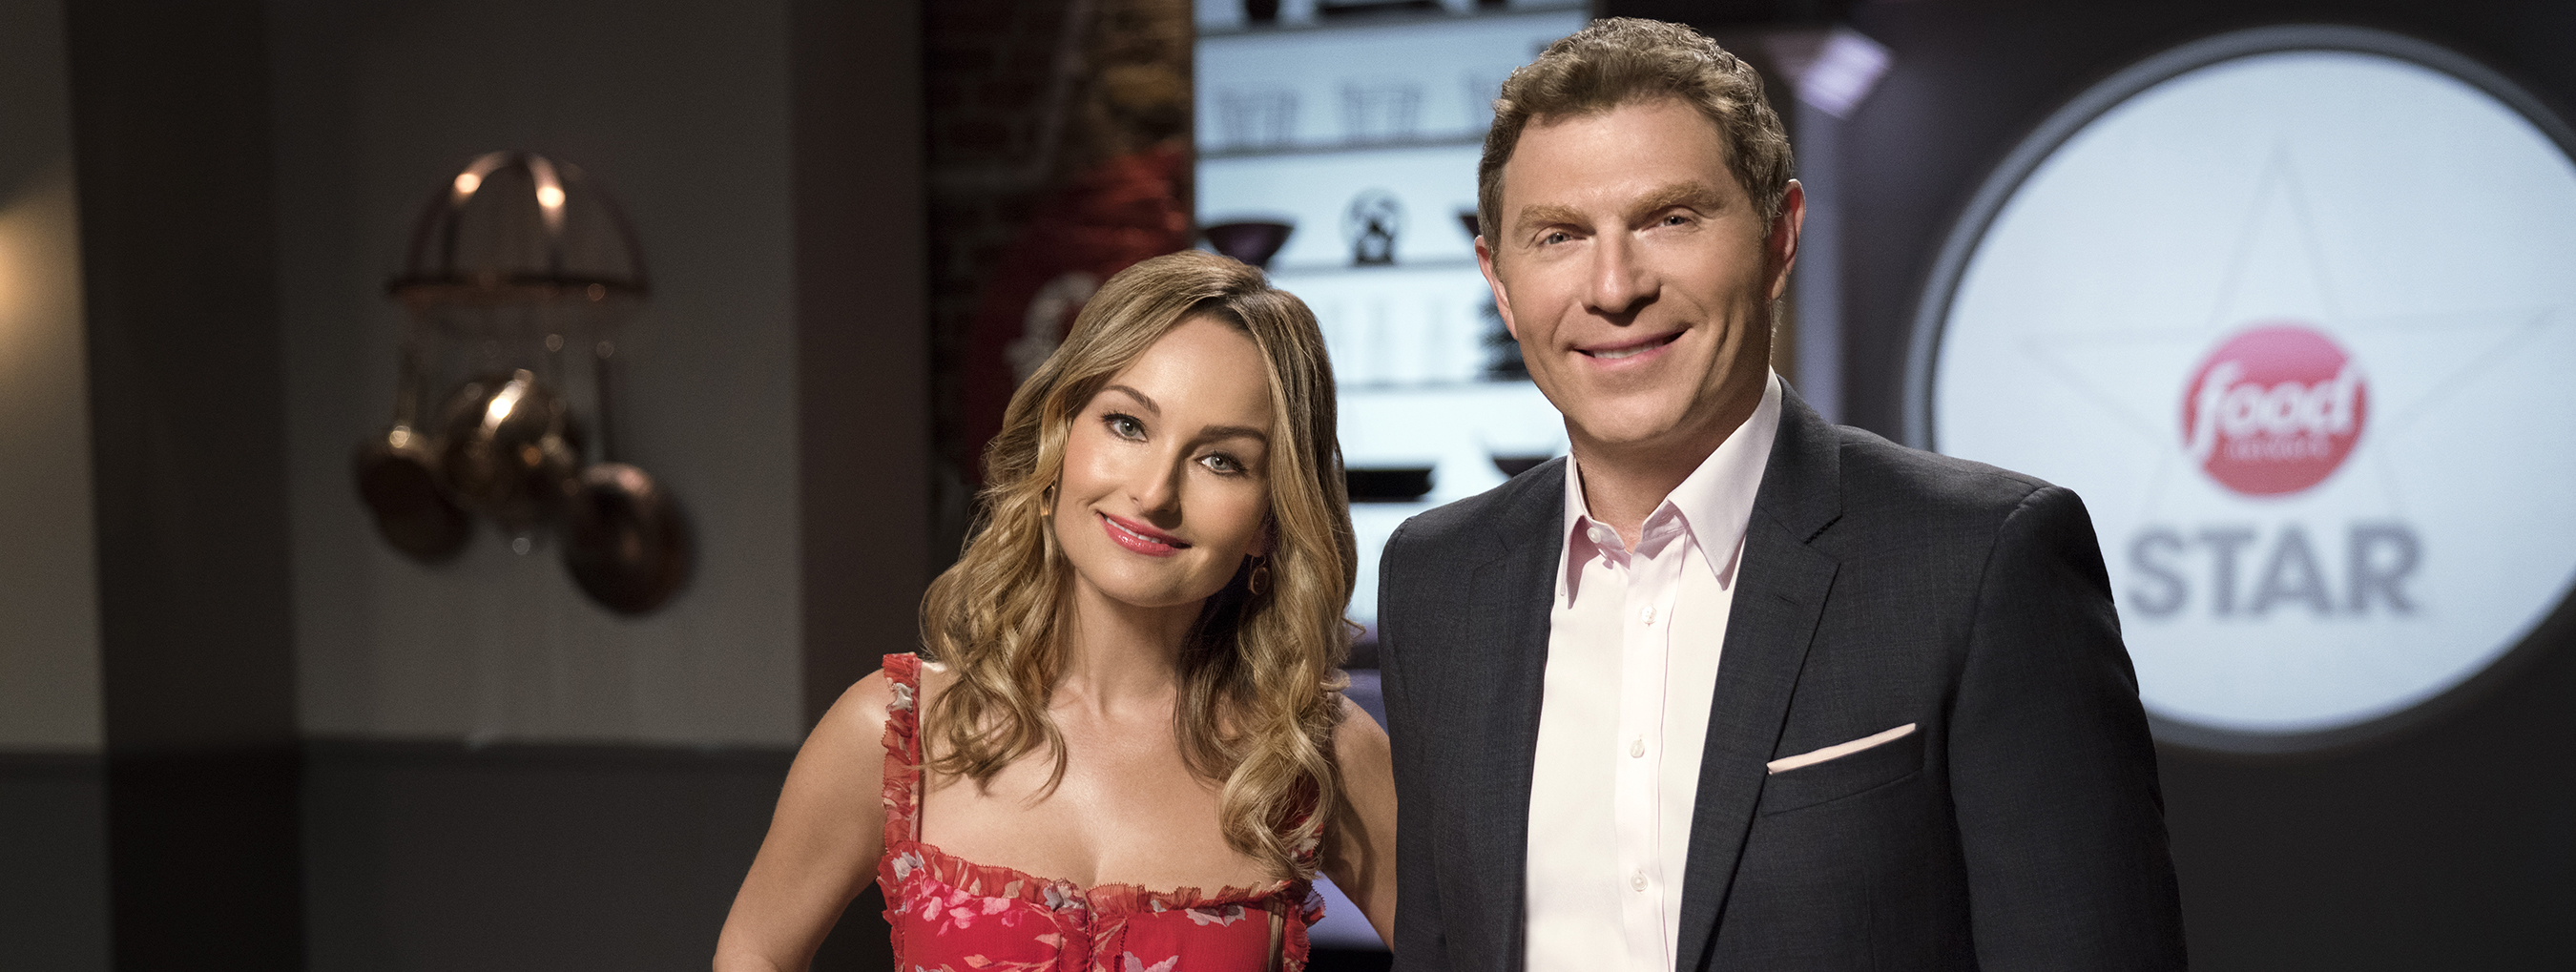 the hosts of food network star